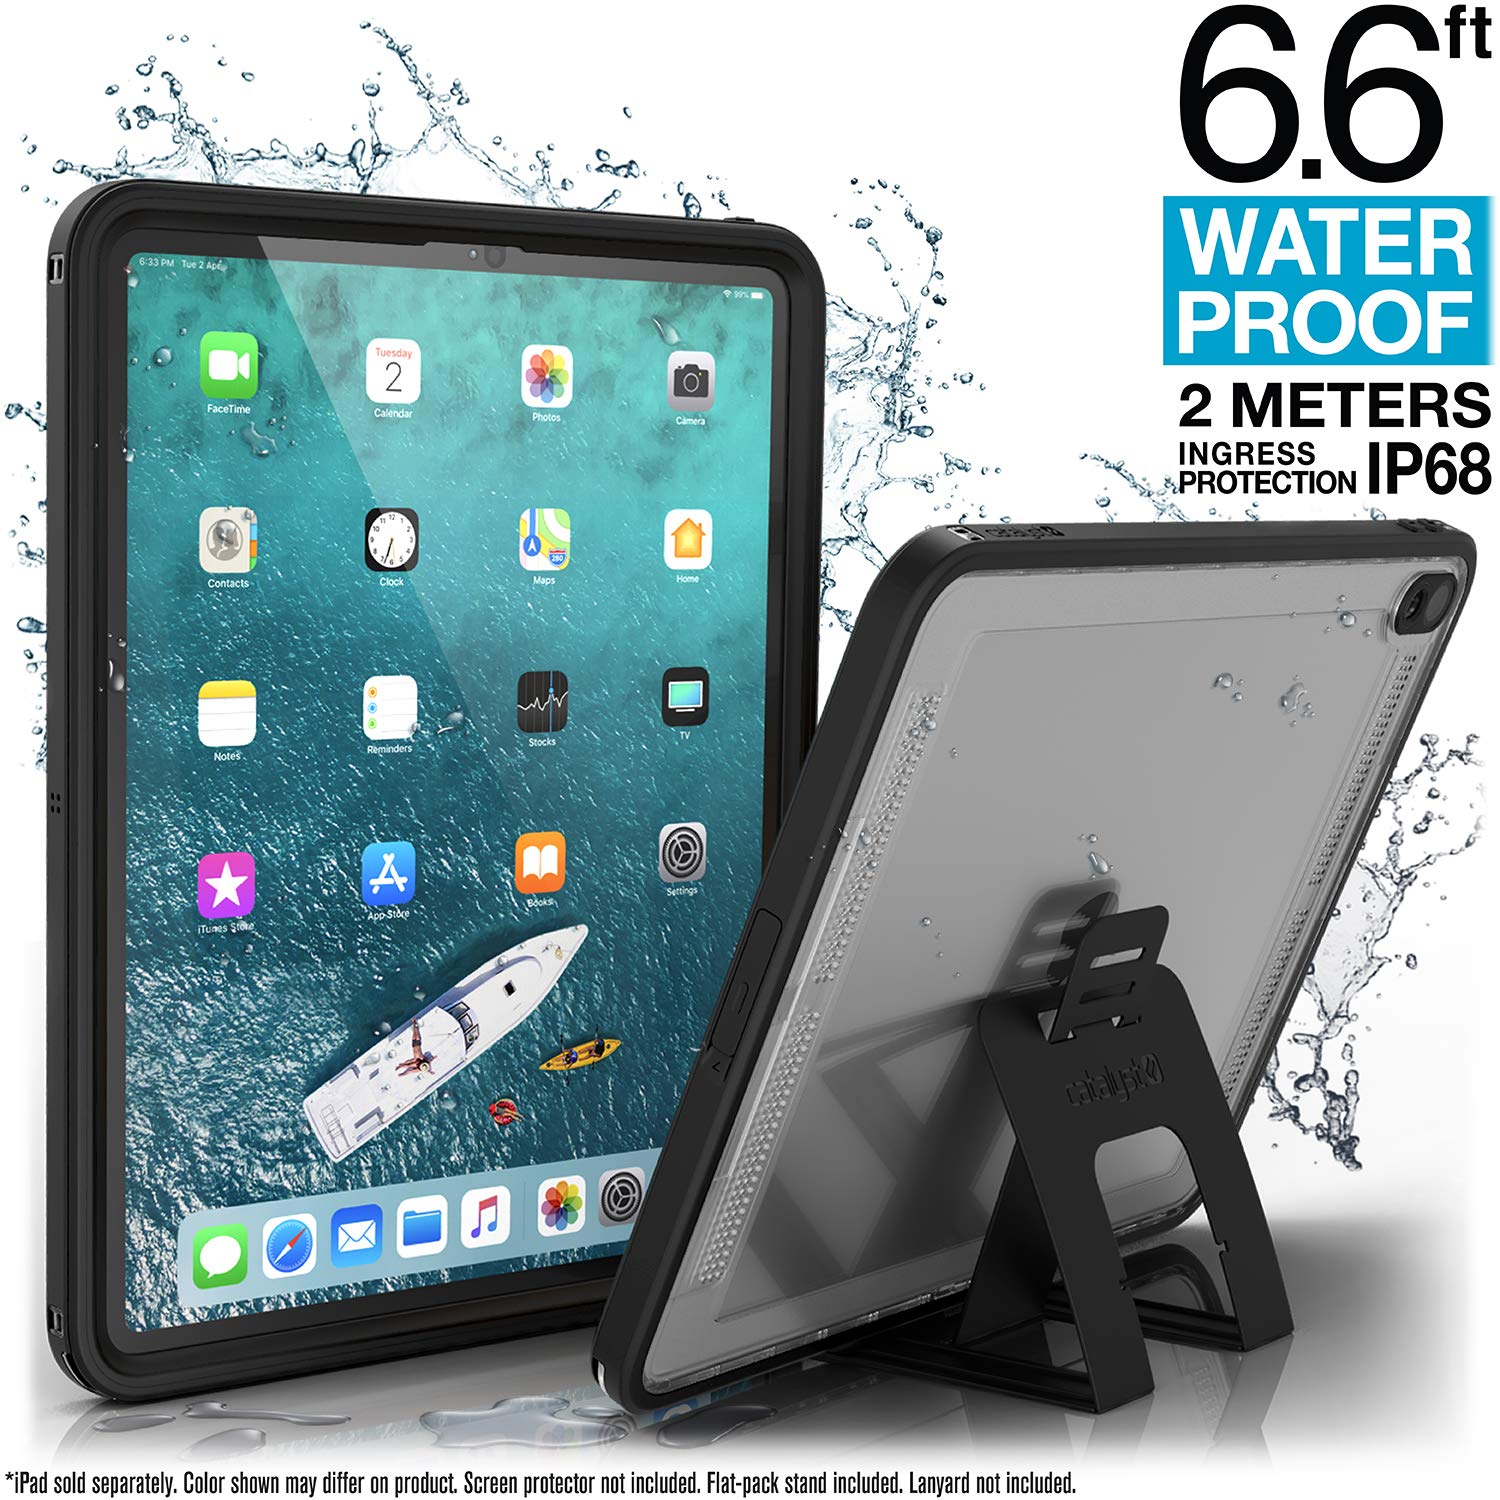 Waterproof iPad Case for iPad Pro 12.9'' 2018 by Catalyst - Waterproof 6.6 ft - Full Body Protection, Heavy Duty Drop Proof 4ft, Kickstand, True Acoustic Sound Technology, Built-in Screen Protector by Catalyst